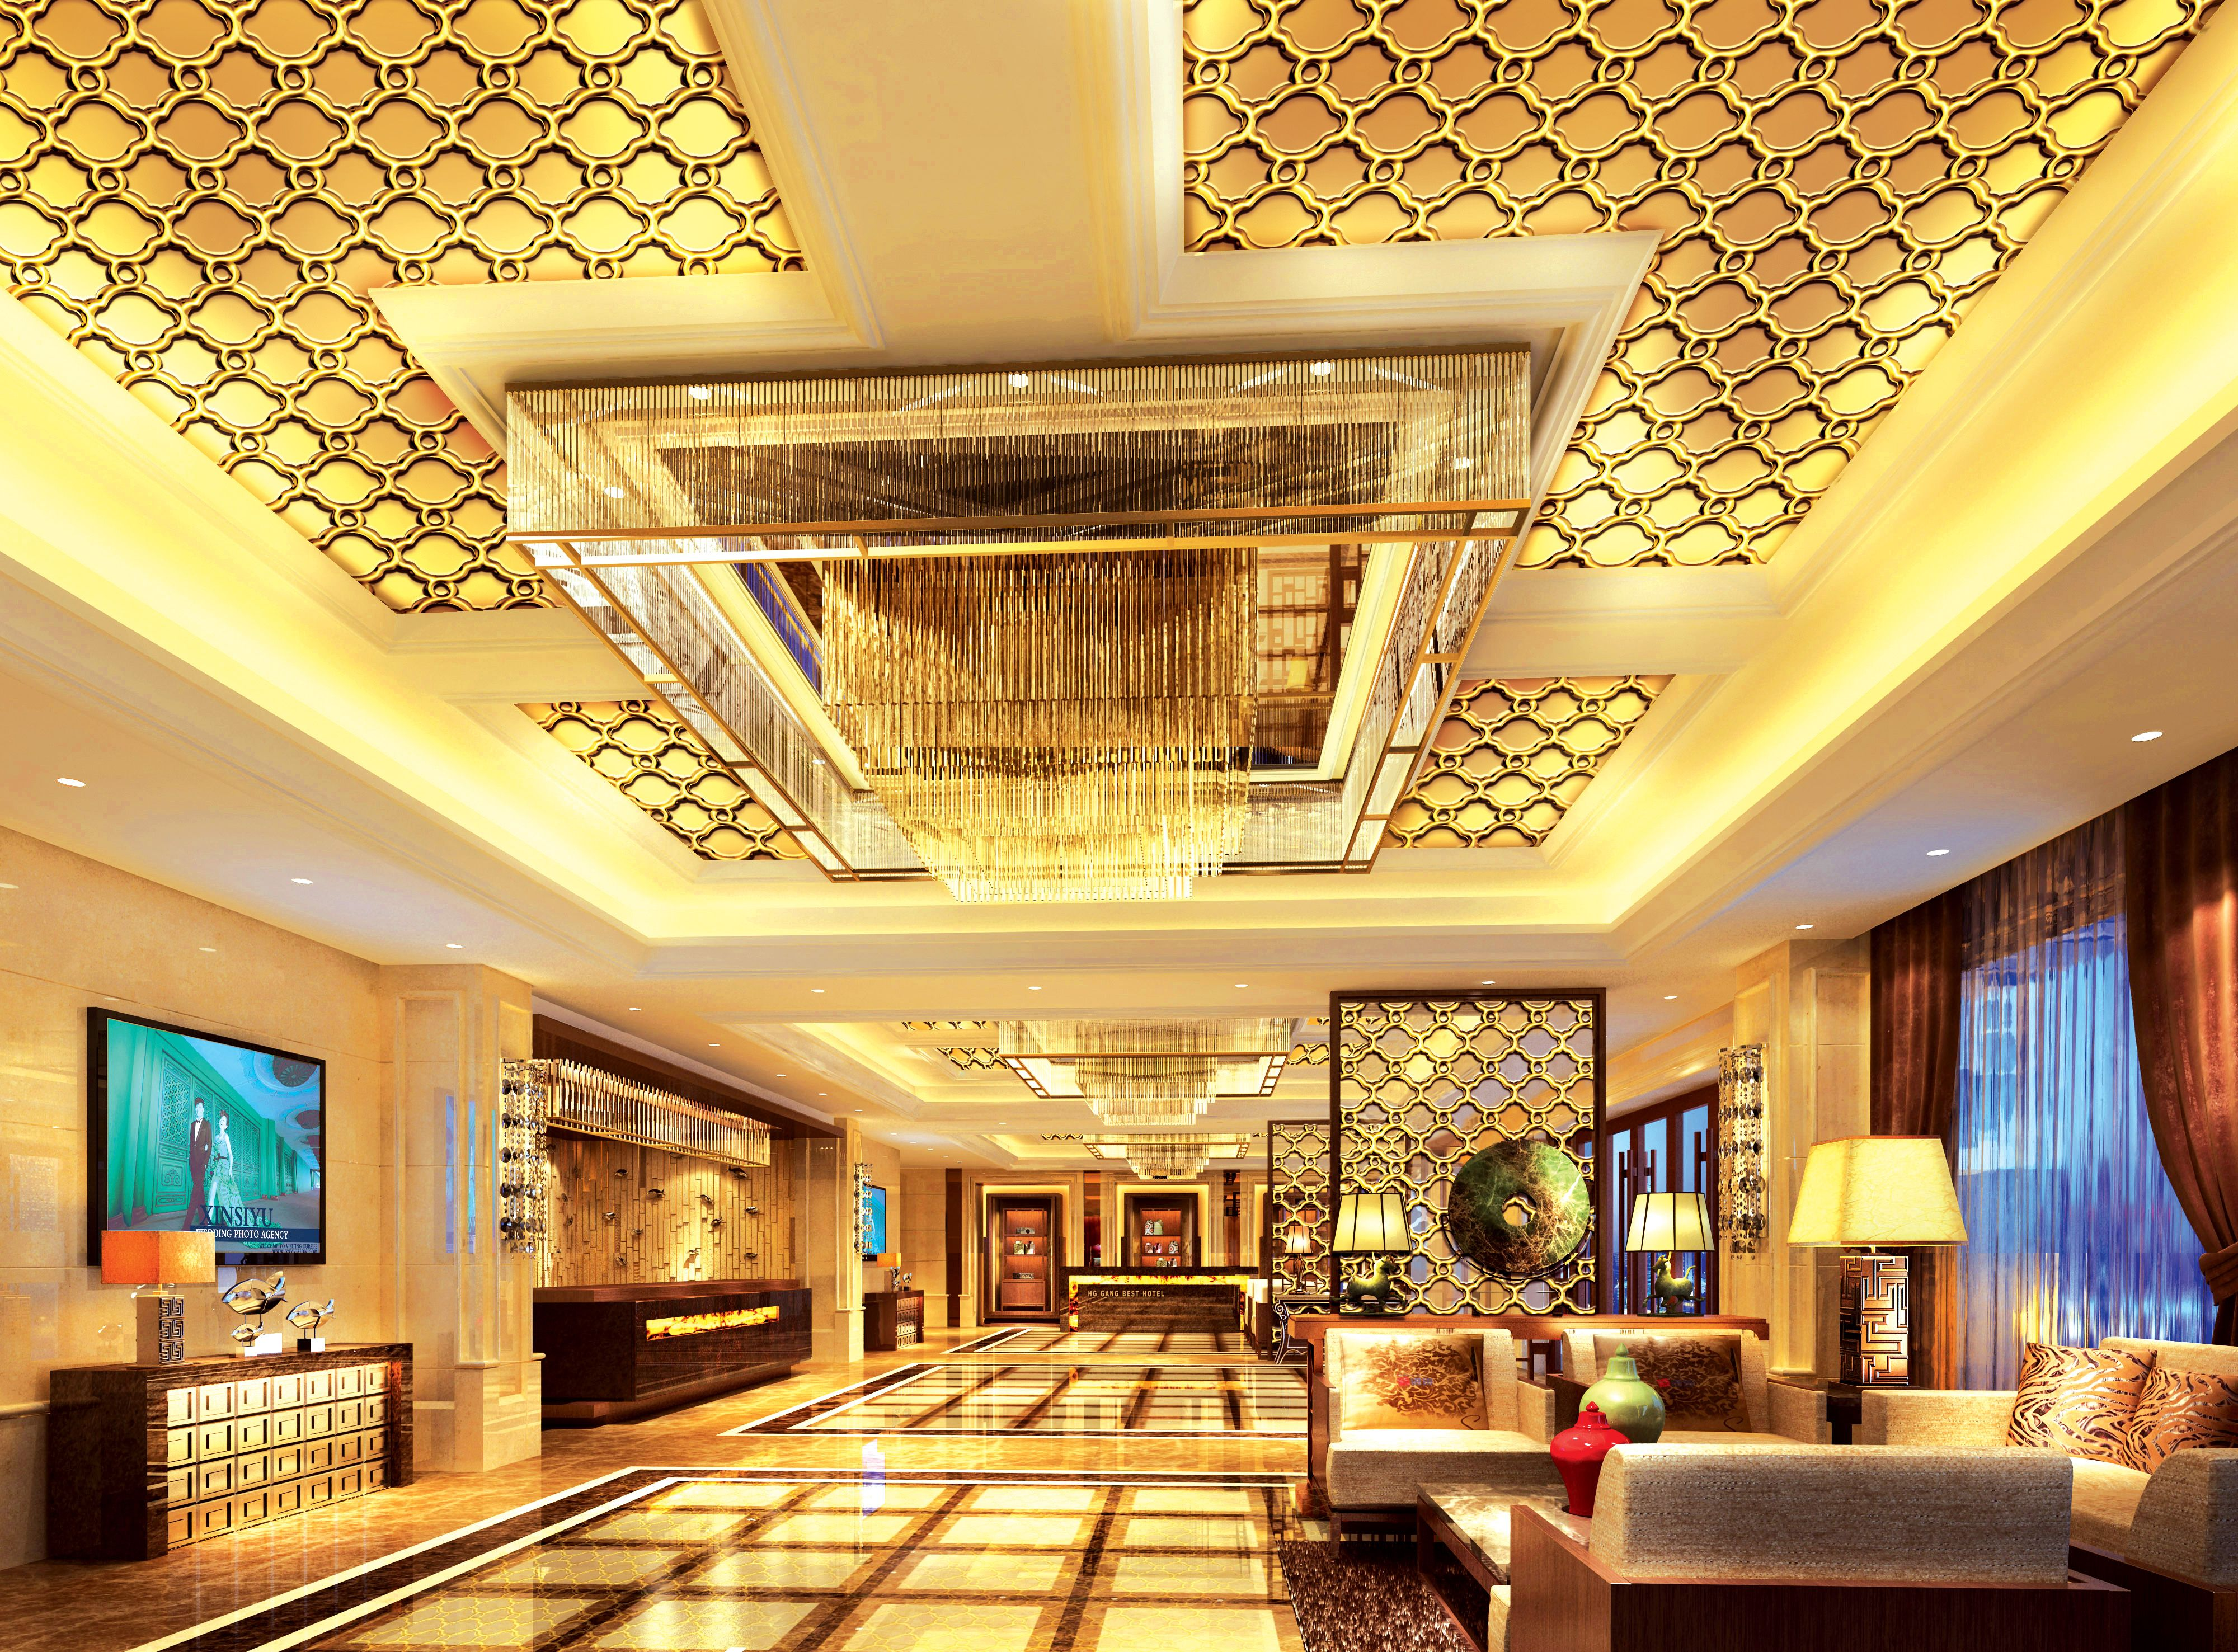 Gold Hollow Stainless Steel Projects For Ceiling Decoration Various Pattern